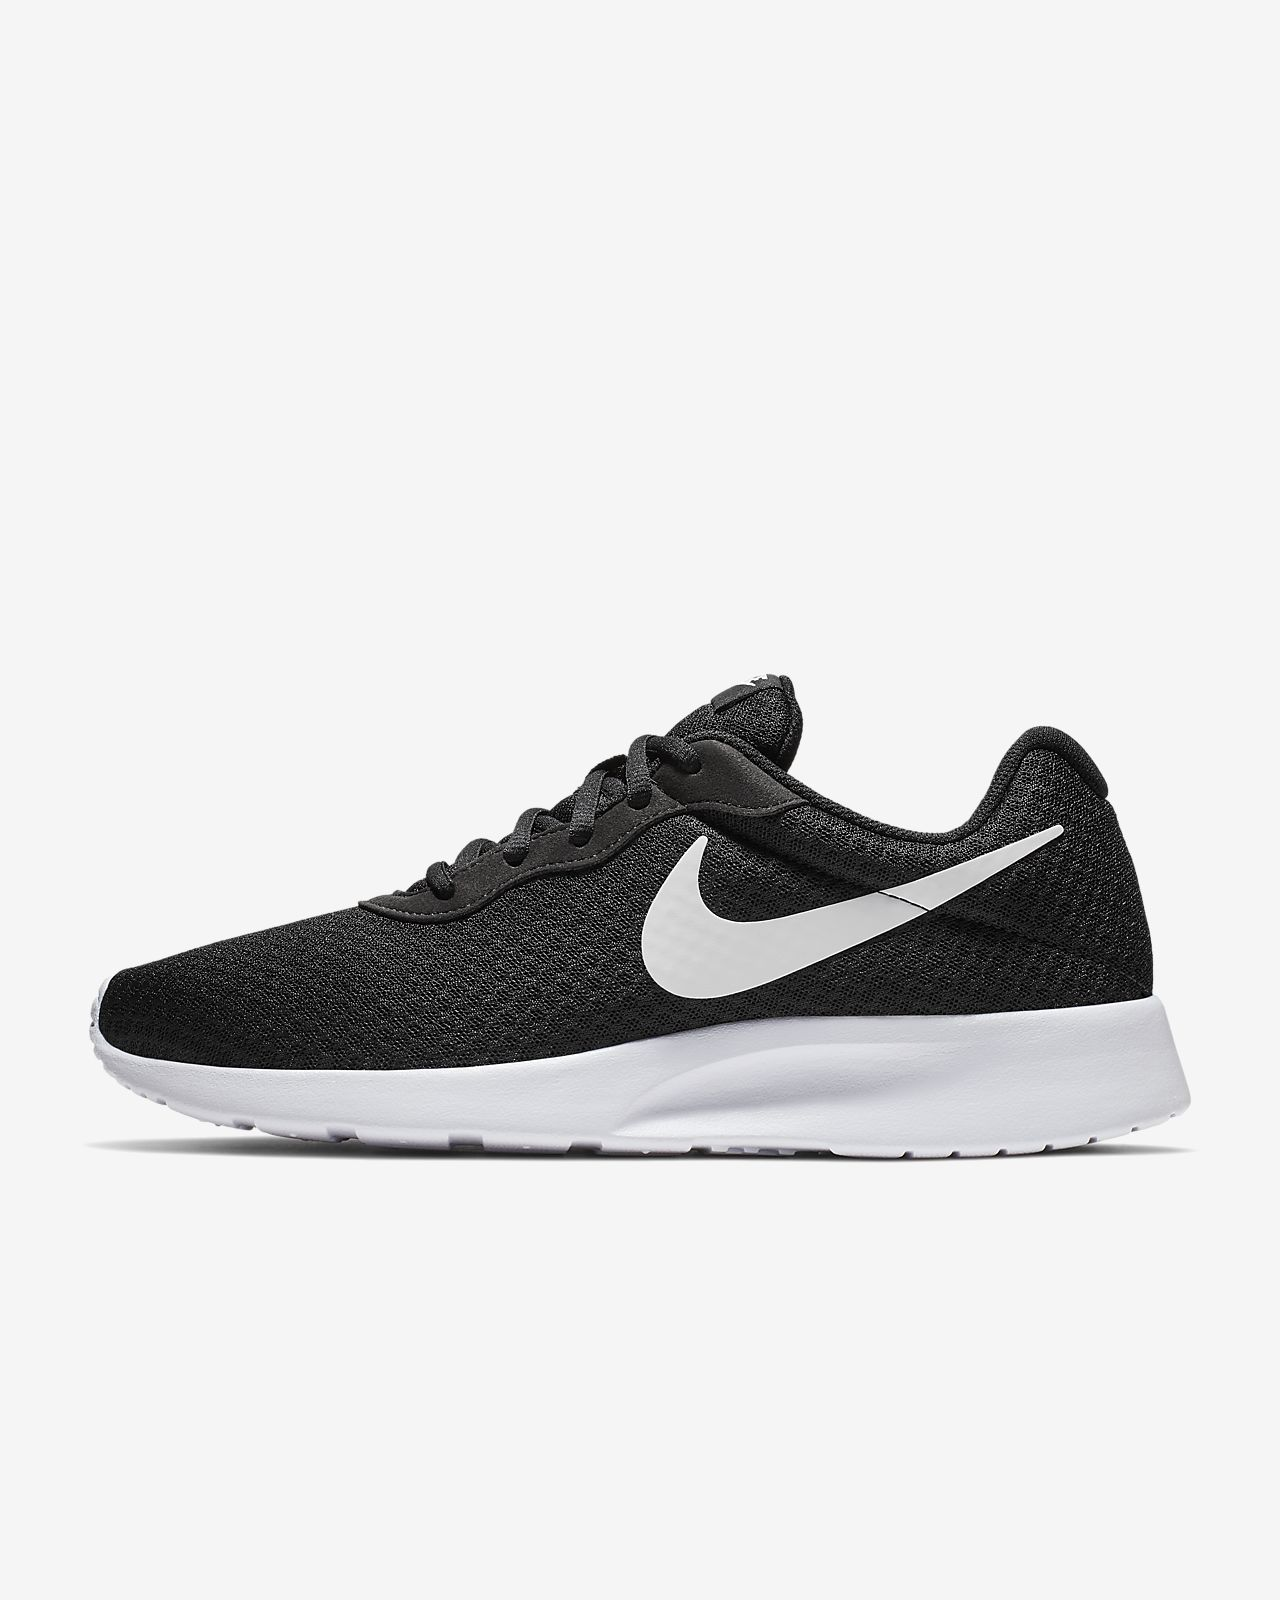 new arrival 58912 1f277 Nike Tanjun Men s Shoe. Nike.com